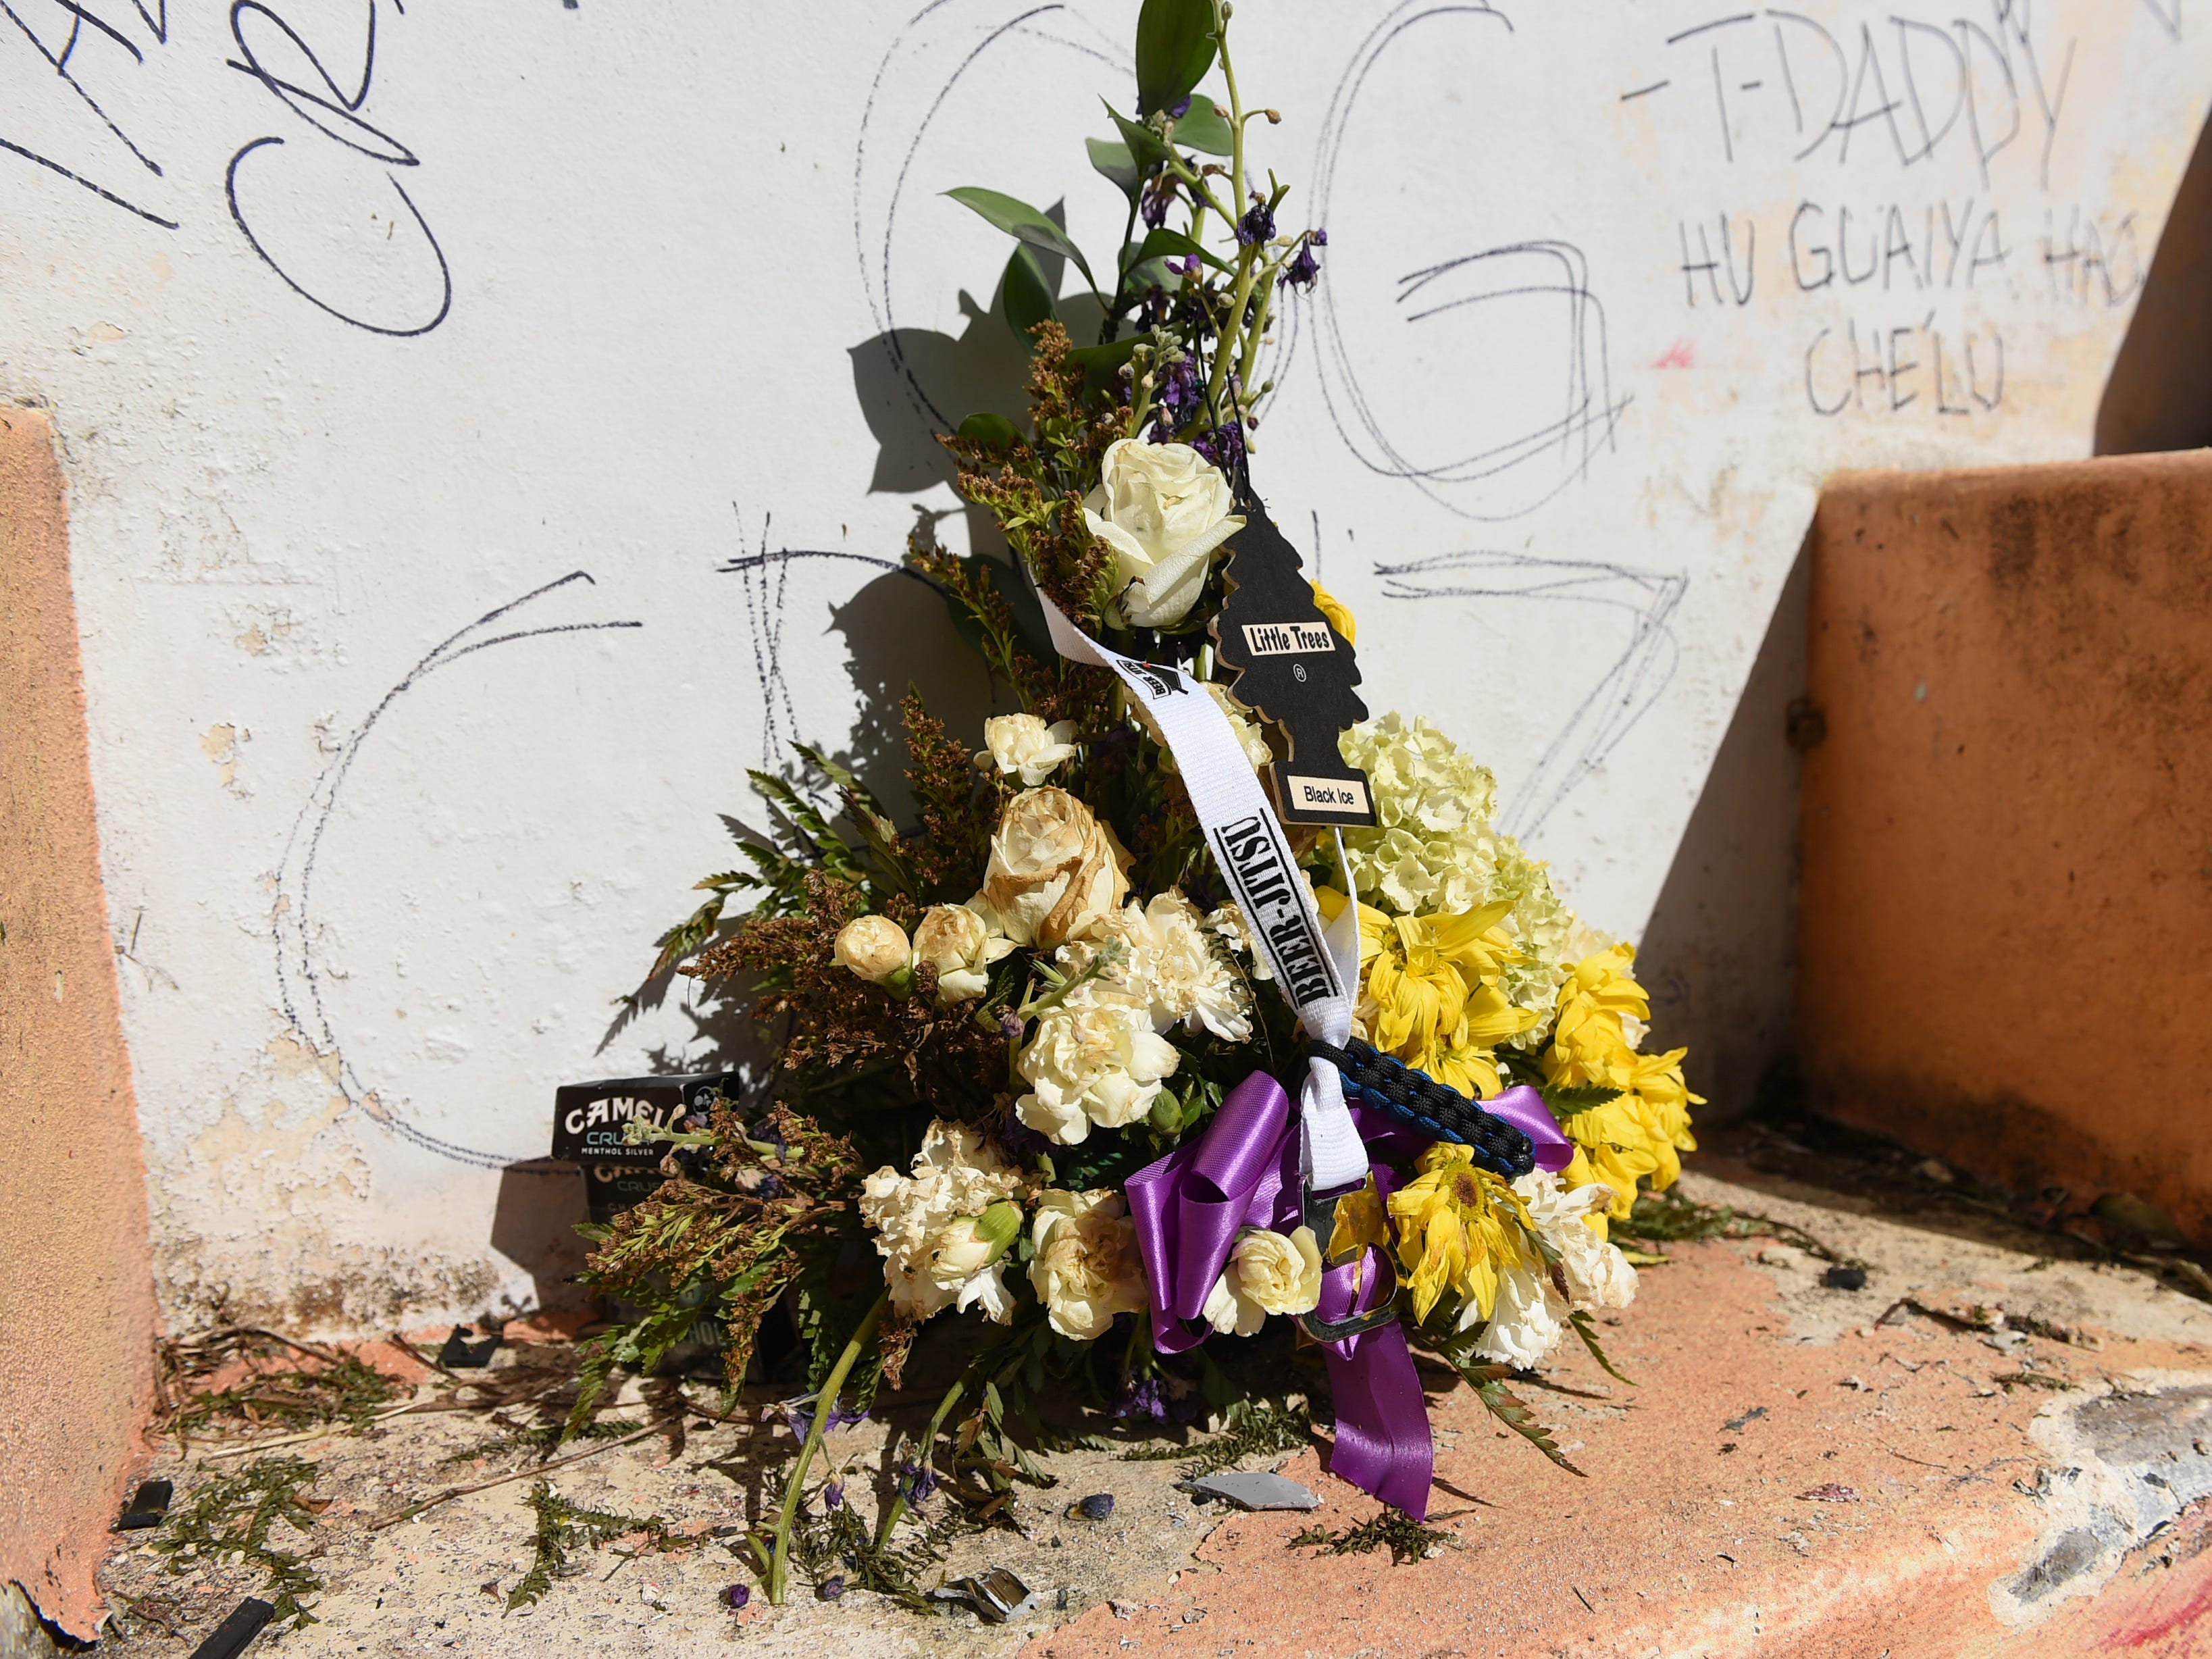 A decorated floral arrangement at the fatal crash site of Deon Cruz, 19, in Ordot on Feb. 10, 2019.